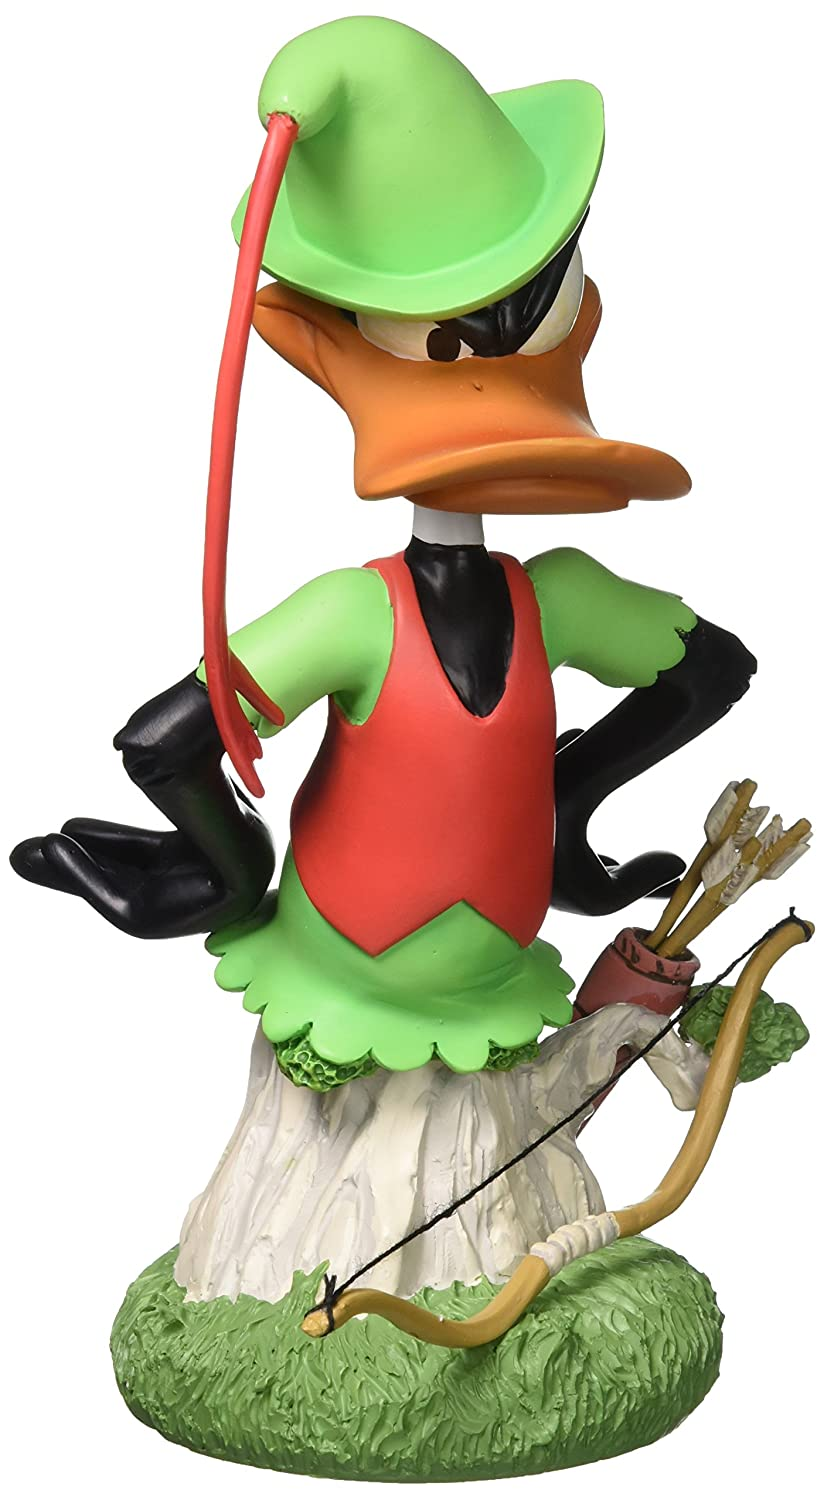 9f2daaa3651 Amazon.com  Enesco Grand Jester Studios Daffy Duck as Robin Hood Stone  Resin Merrie Melodies Figurine  Enesco  Home   Kitchen